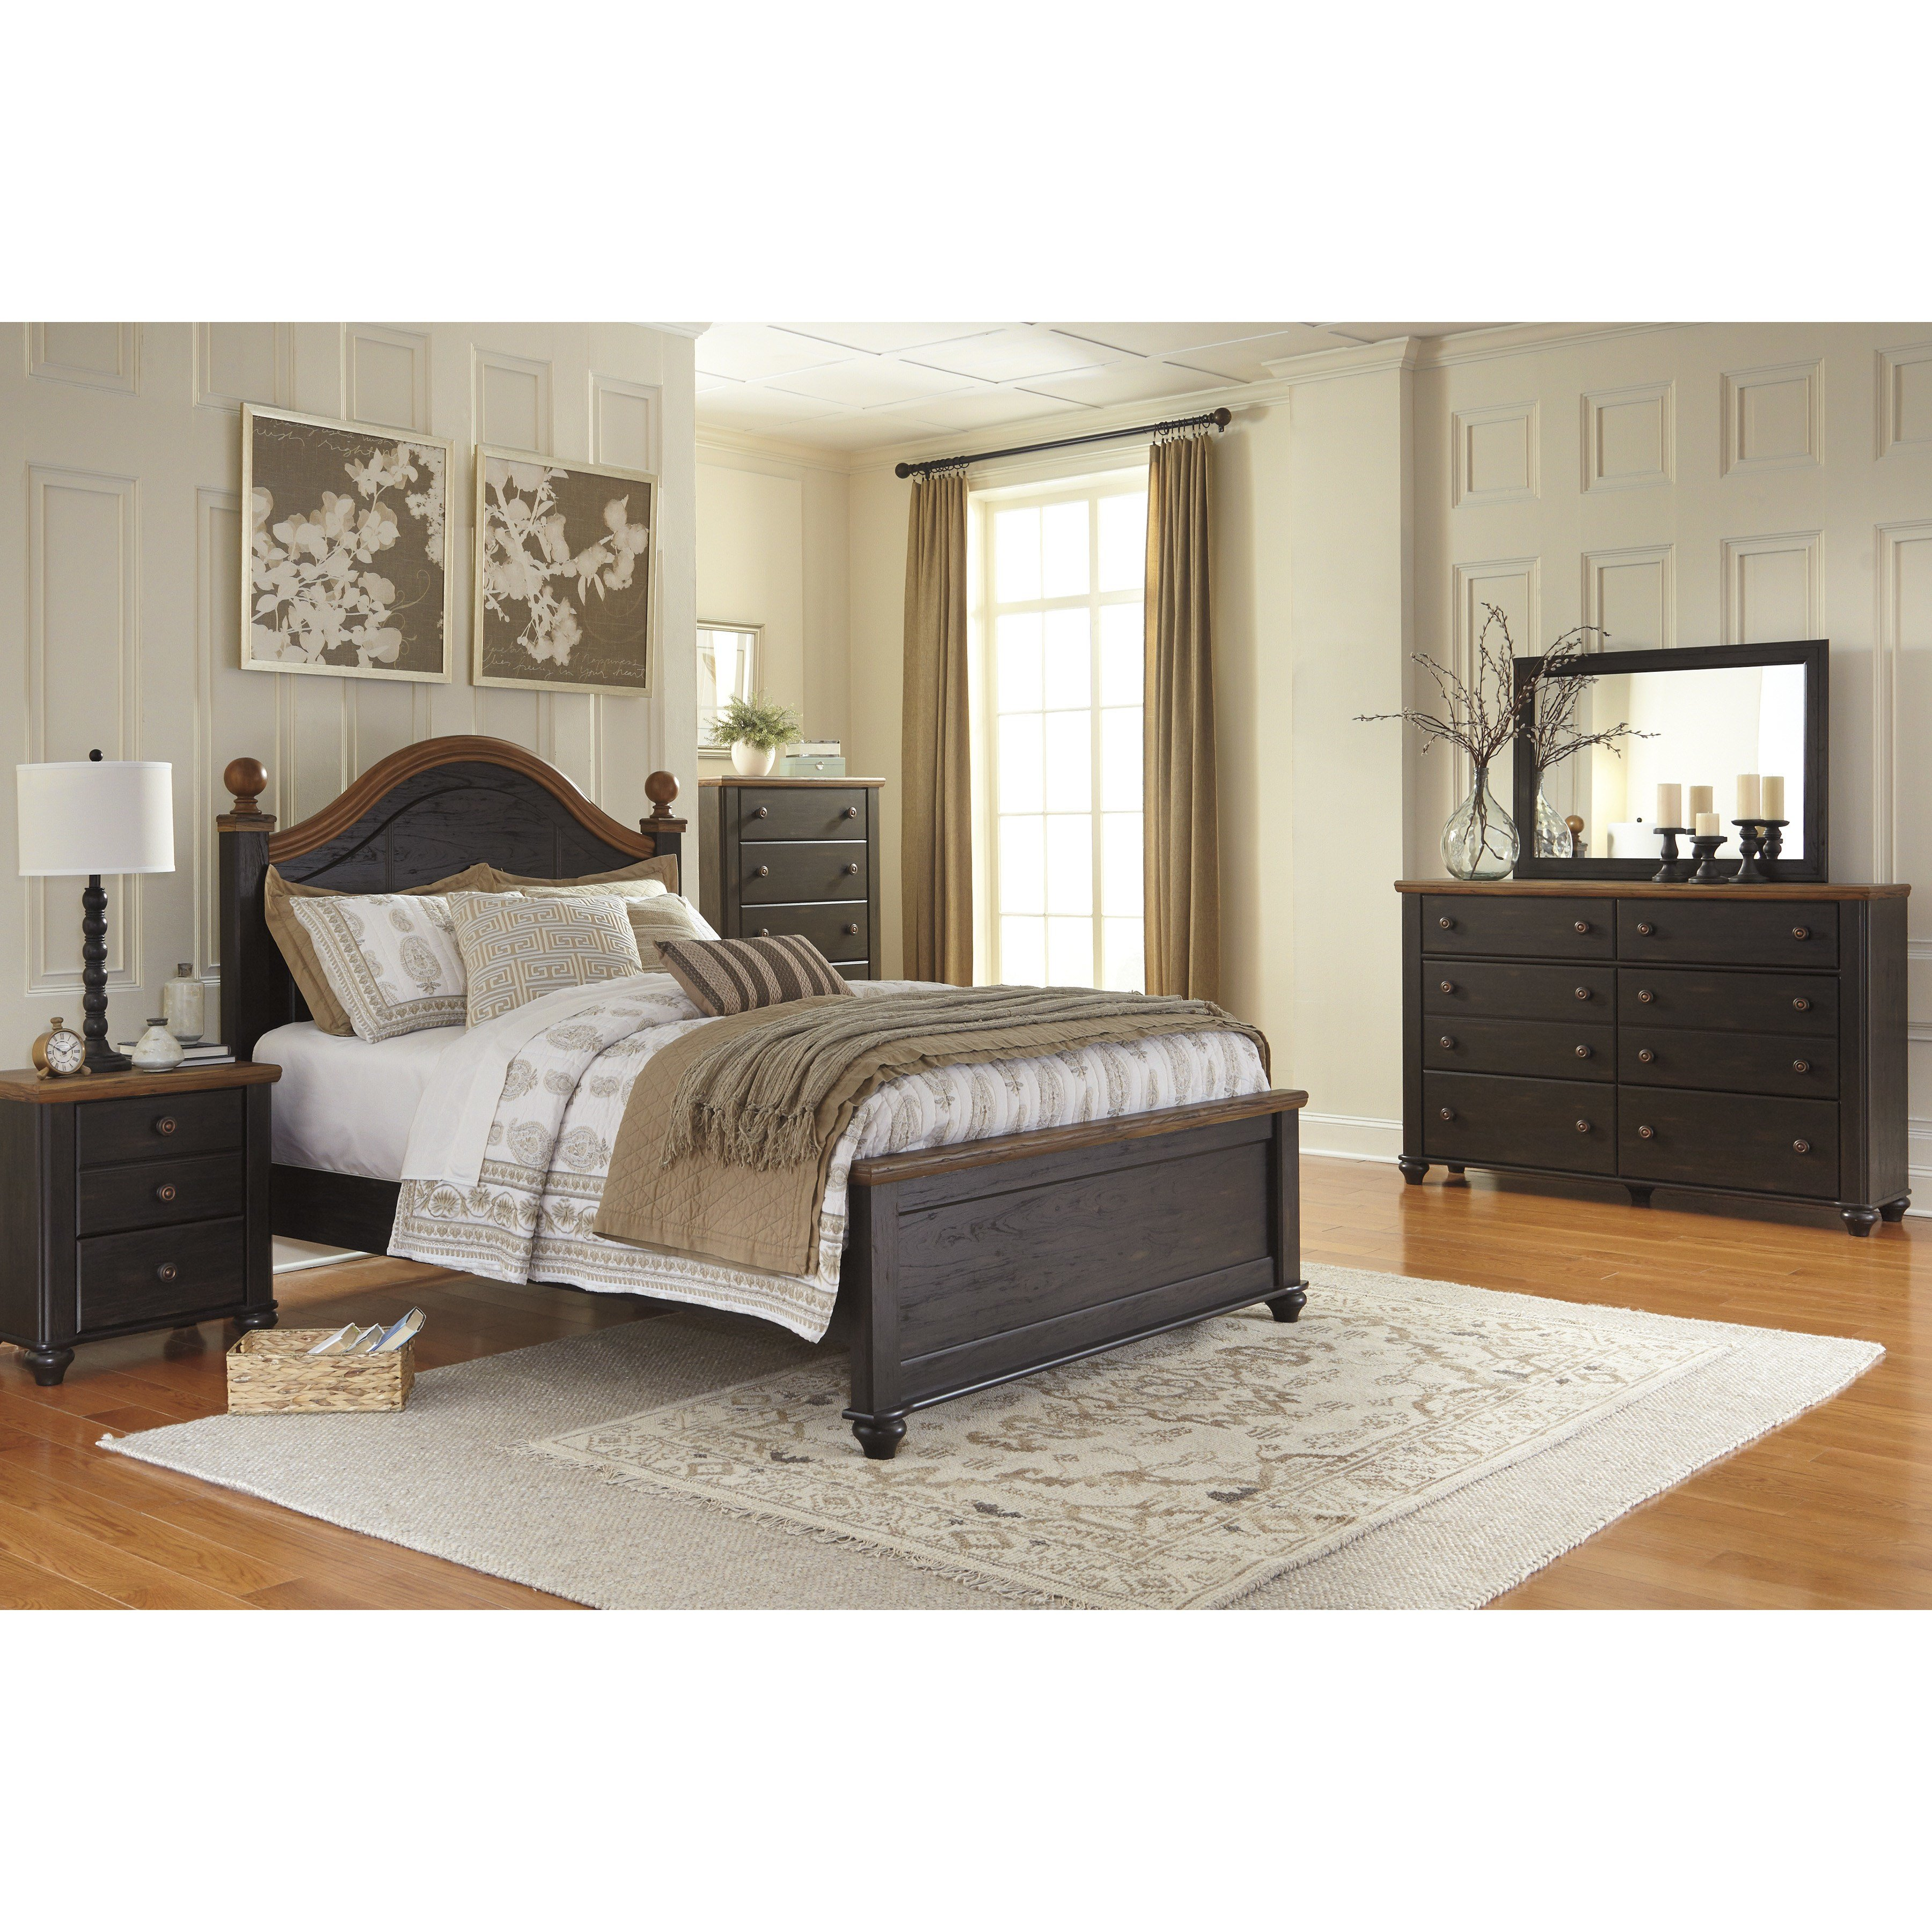 Best Signature Design By Ashley Panel Customizable Bedroom Set Reviews Wayfair With Pictures